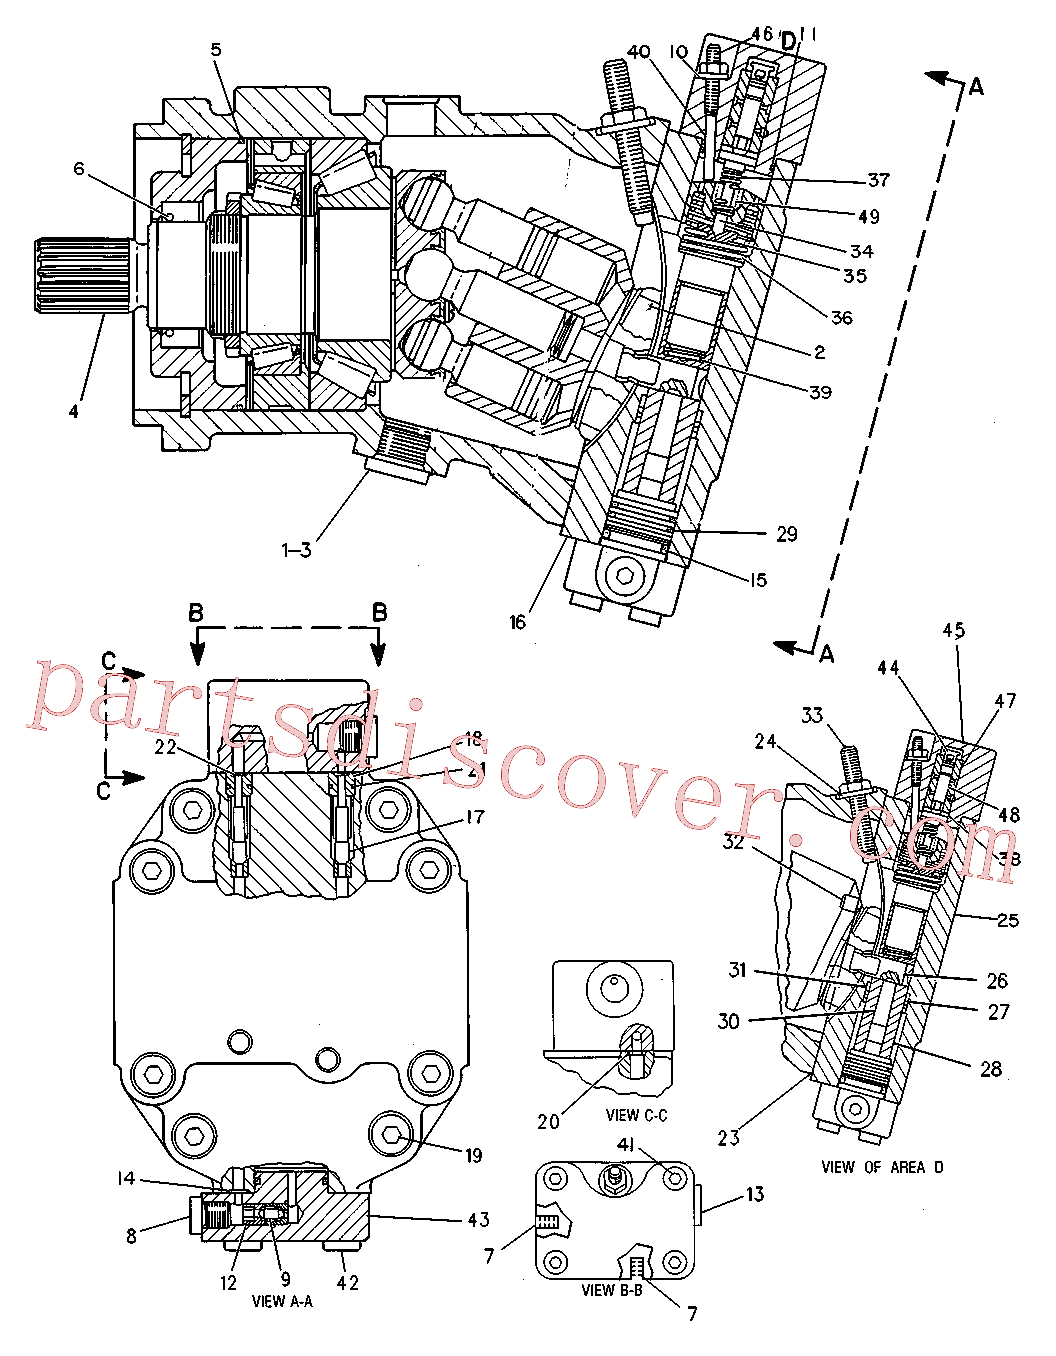 CAT 8T-0341 for 336D Excavator(EXC) power train 7X-8163 Assembly